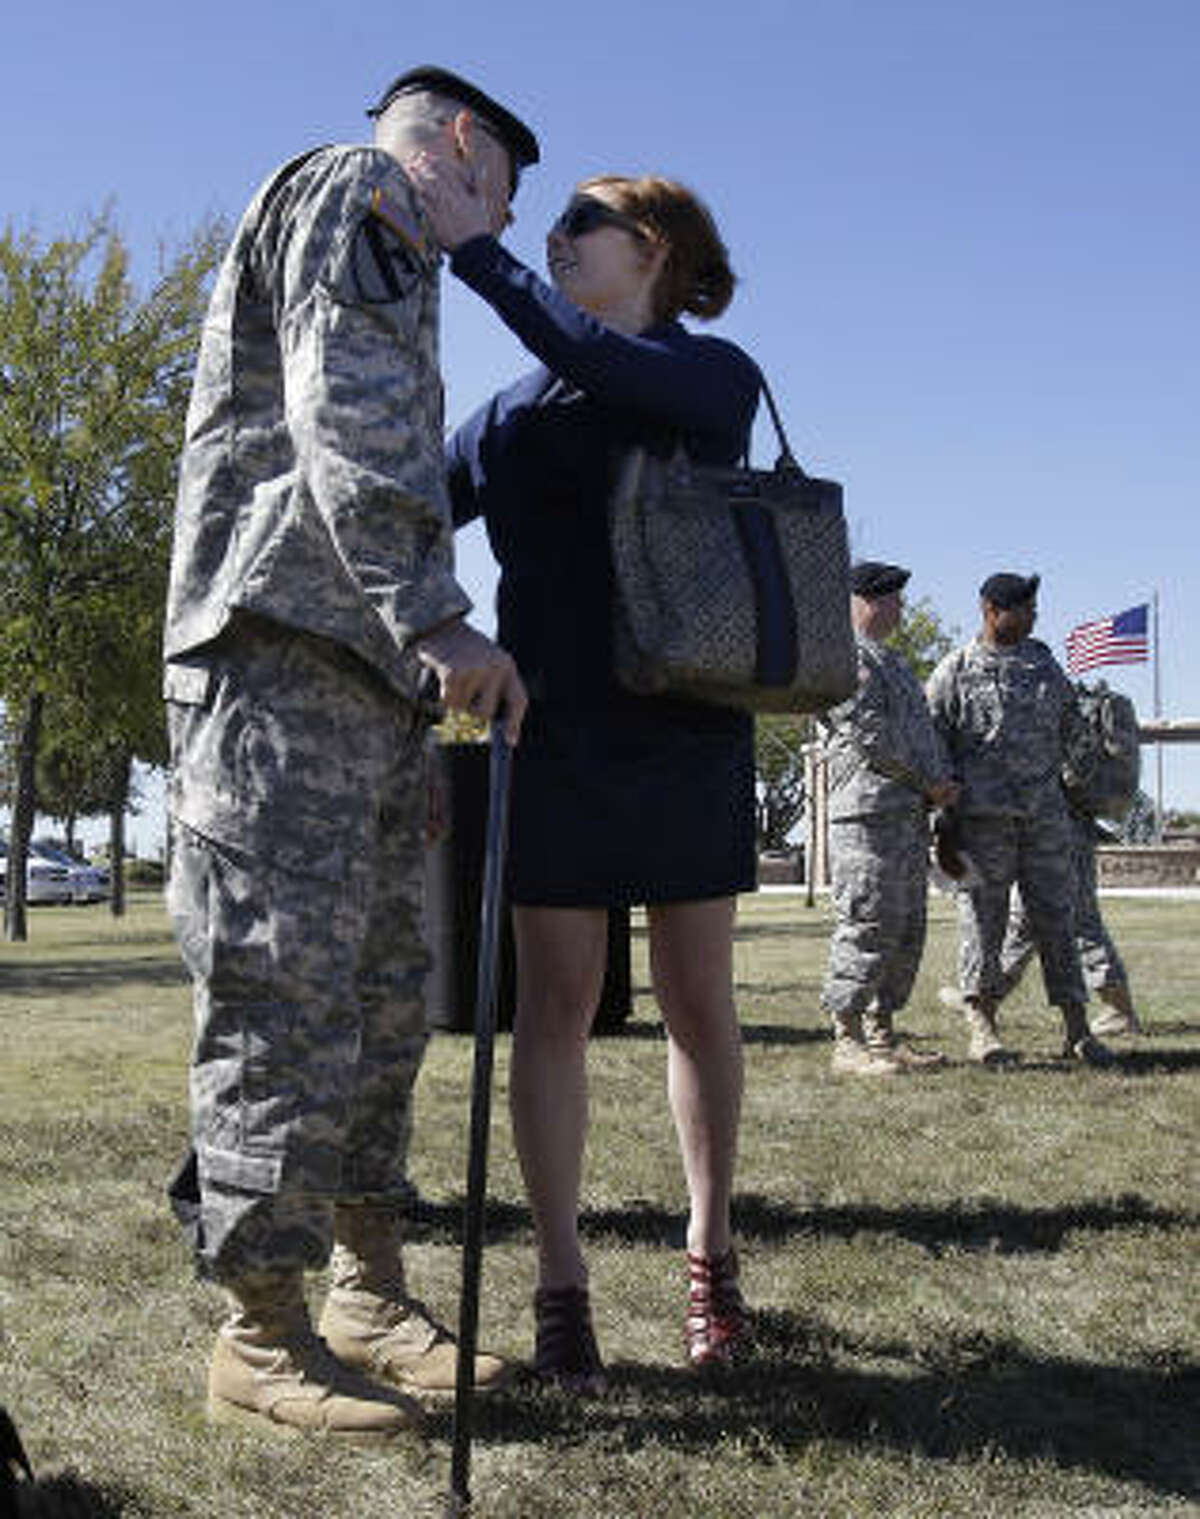 Staff Sgt. Patrick Zeigler, left, and fiancee Jessica Hansen arrive for a Remembrance Ceremony commemorating the one-year anniversary of the worst mass shooting on a U.S. military base, where 13 people were killed and dozens wounded, Friday, Nov. 5, 2010, in Fort Hood, Texas. Zeigler was shot four times and is partially paralyzed.